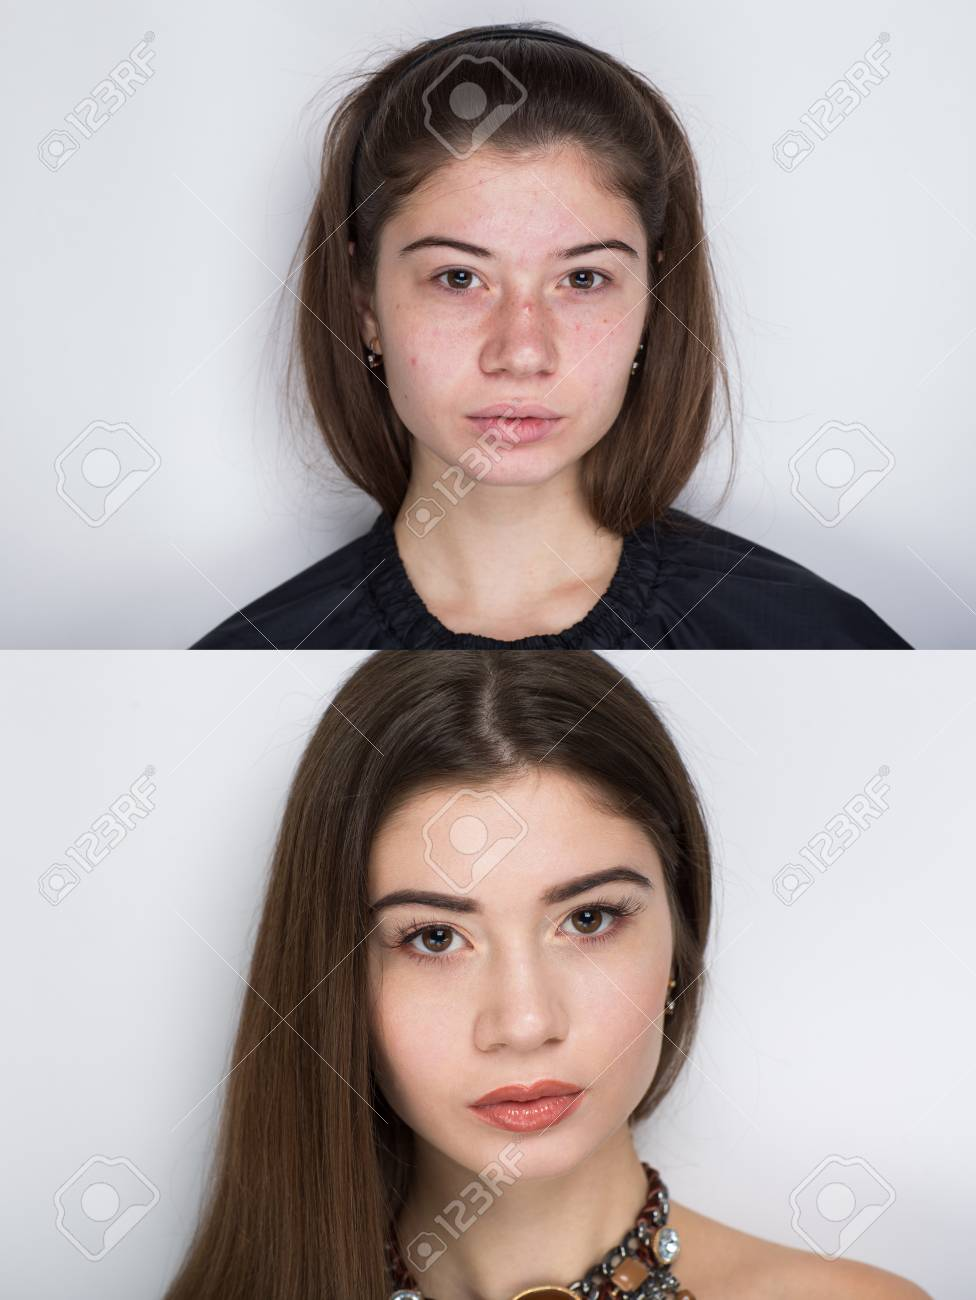 Comparison Portrait Young Beautiful Woman Without And With Makeup Cosmetics Nude Natural Beauty Make Up